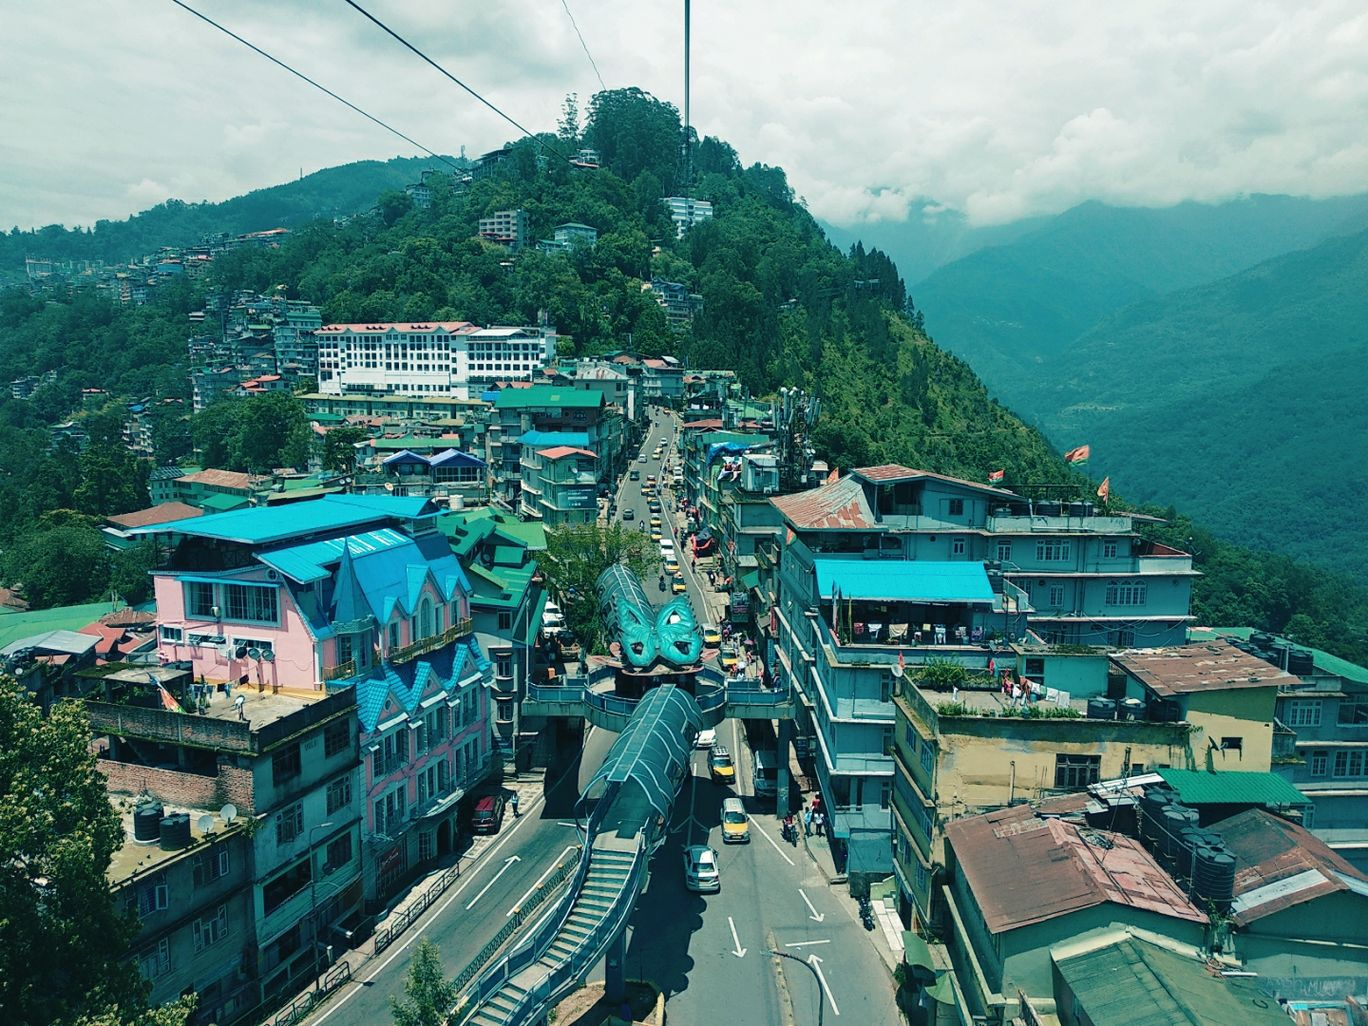 Photo of Namchi Ropeway By jyoti dwivedi